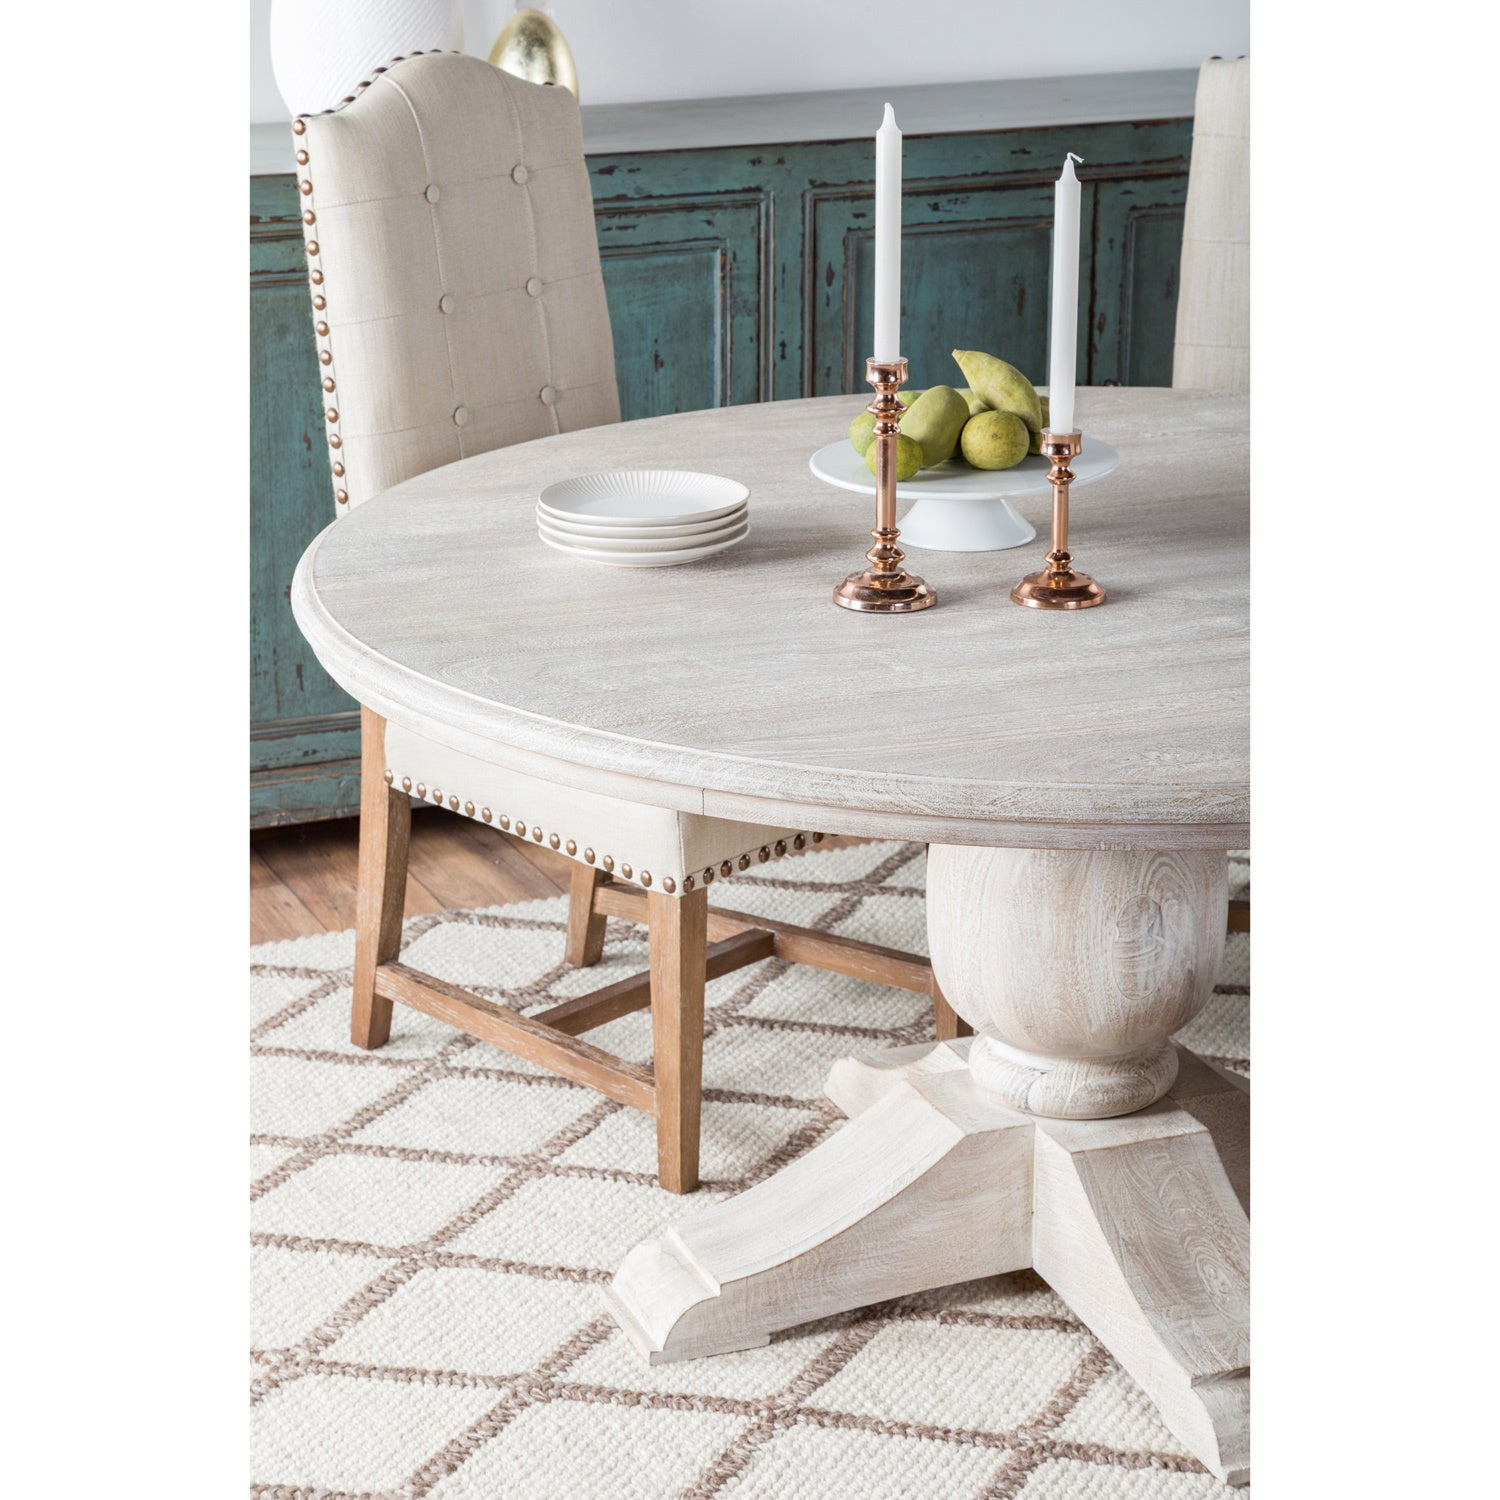 Valencia Wood Antique White 60 Inch Dining Table By Kosas Home   Antique  White   Free Shipping Today   Overstock.com   20125072